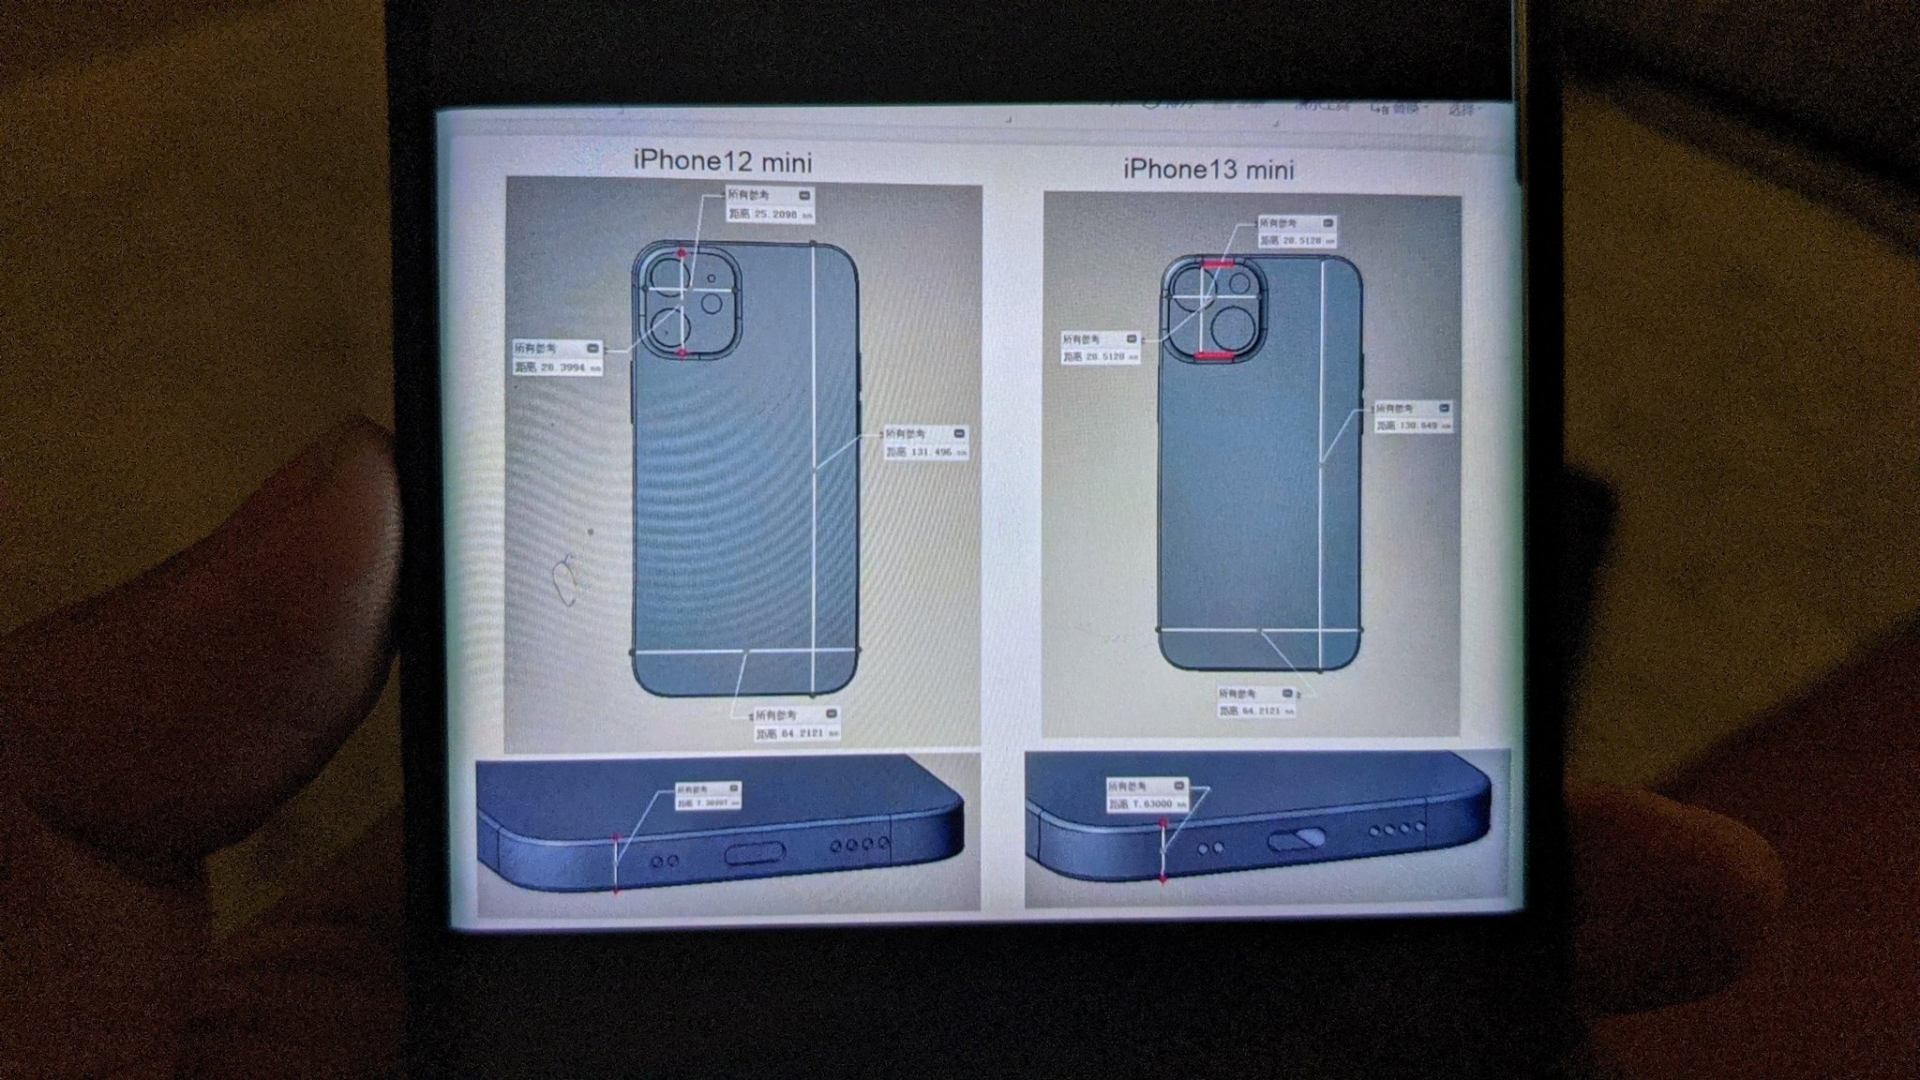 The render reveals the biggest design change on the iPhone 13 will be on the back 1 lưng